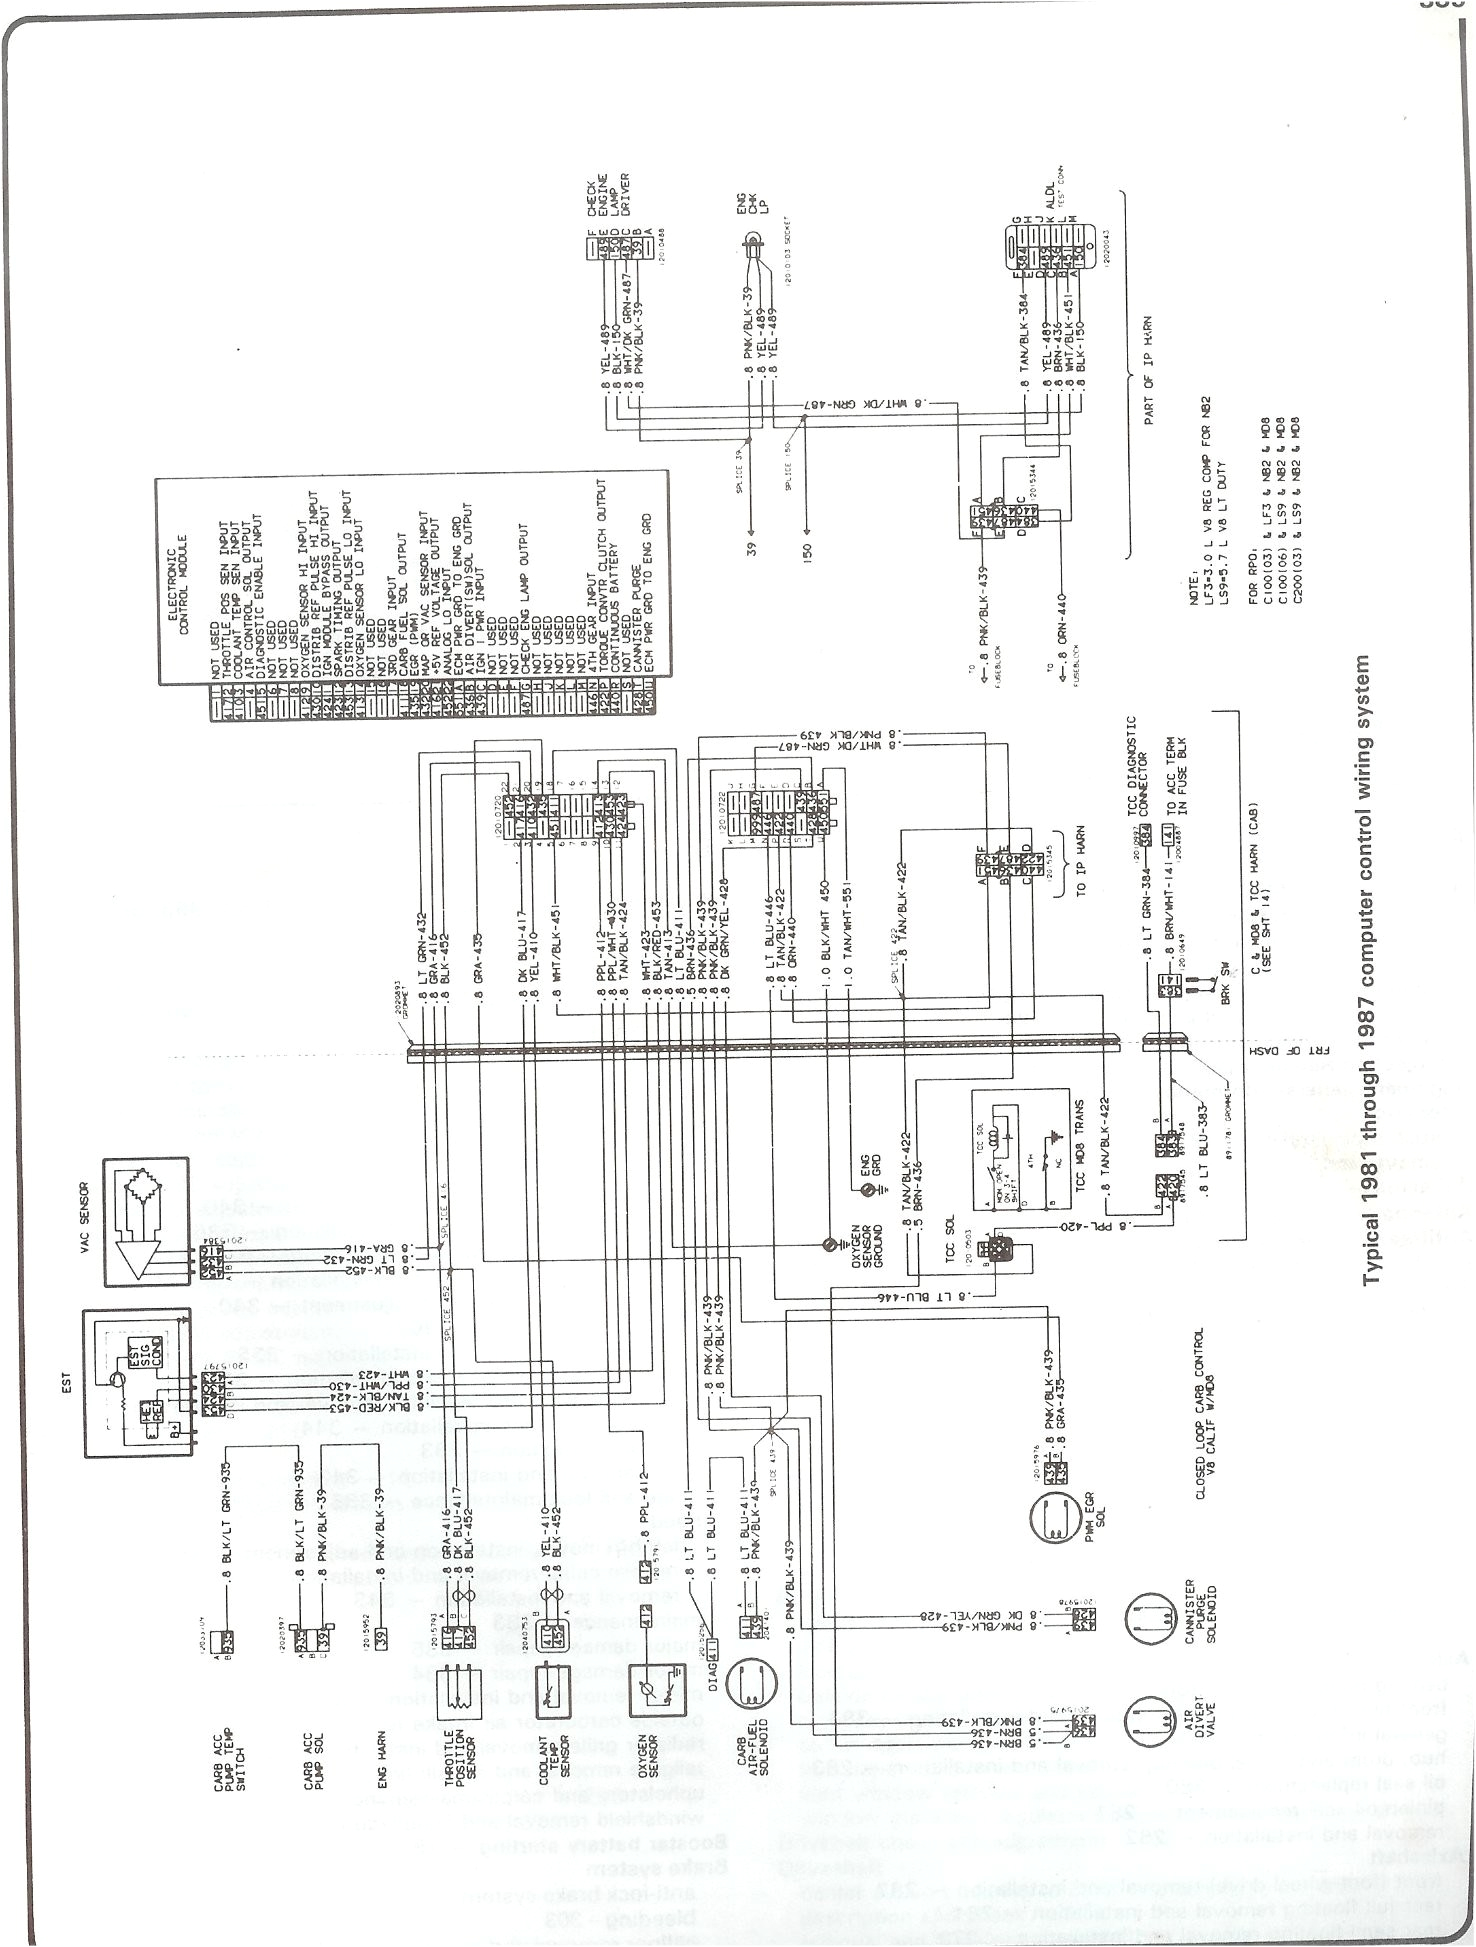 wiring diagram for 82 chevy c 10 use wiring diagram wiring diagram for 82 chevy c 10